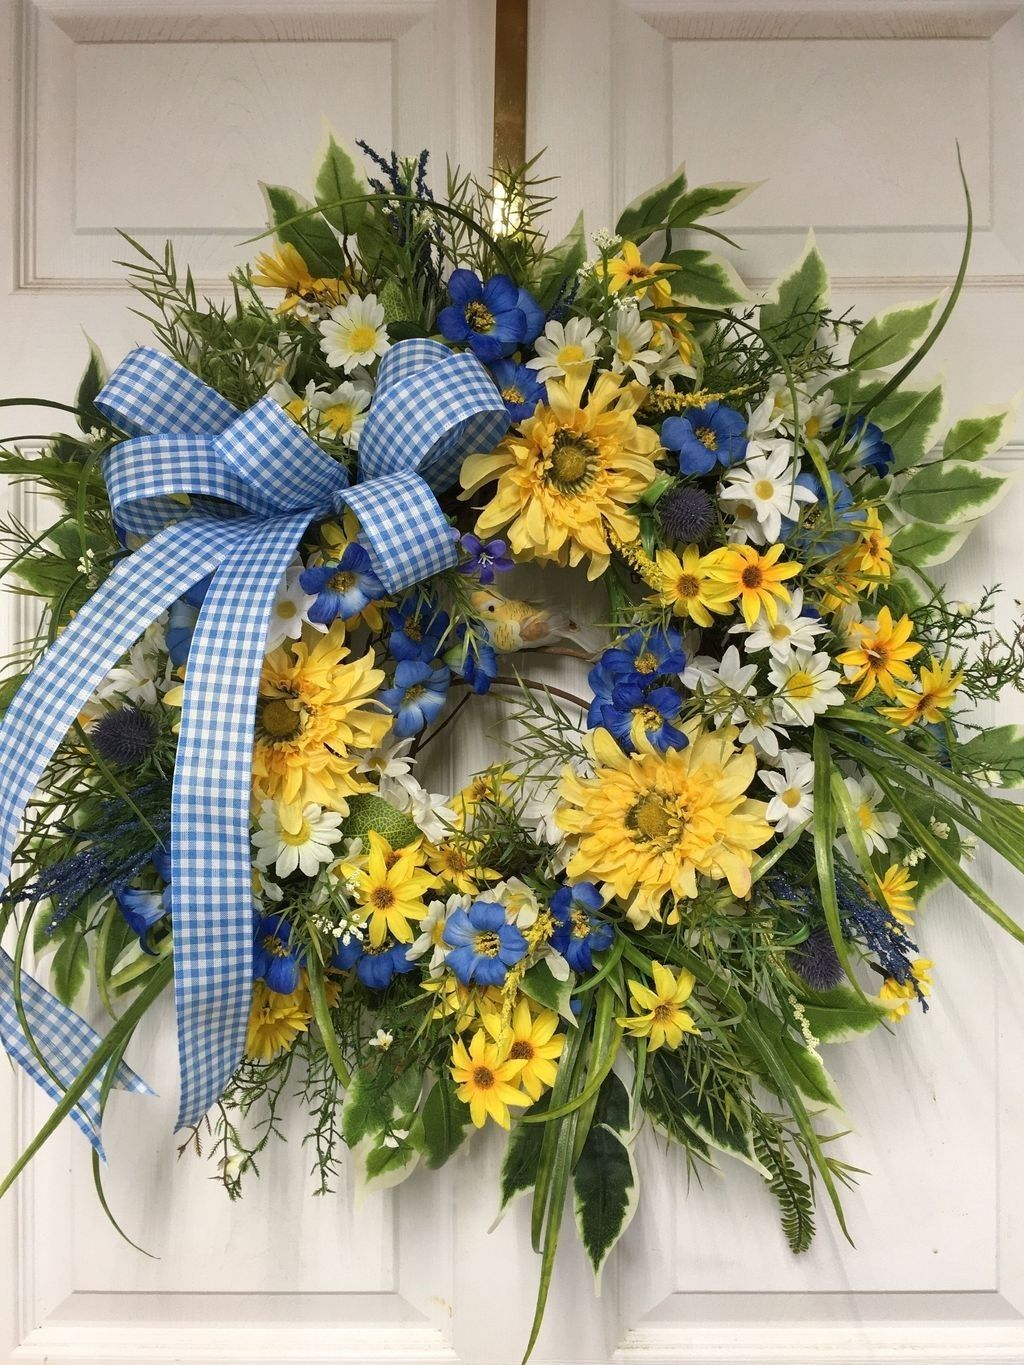 Awesome Spring Wreath Ideas For Front Door Decor 18